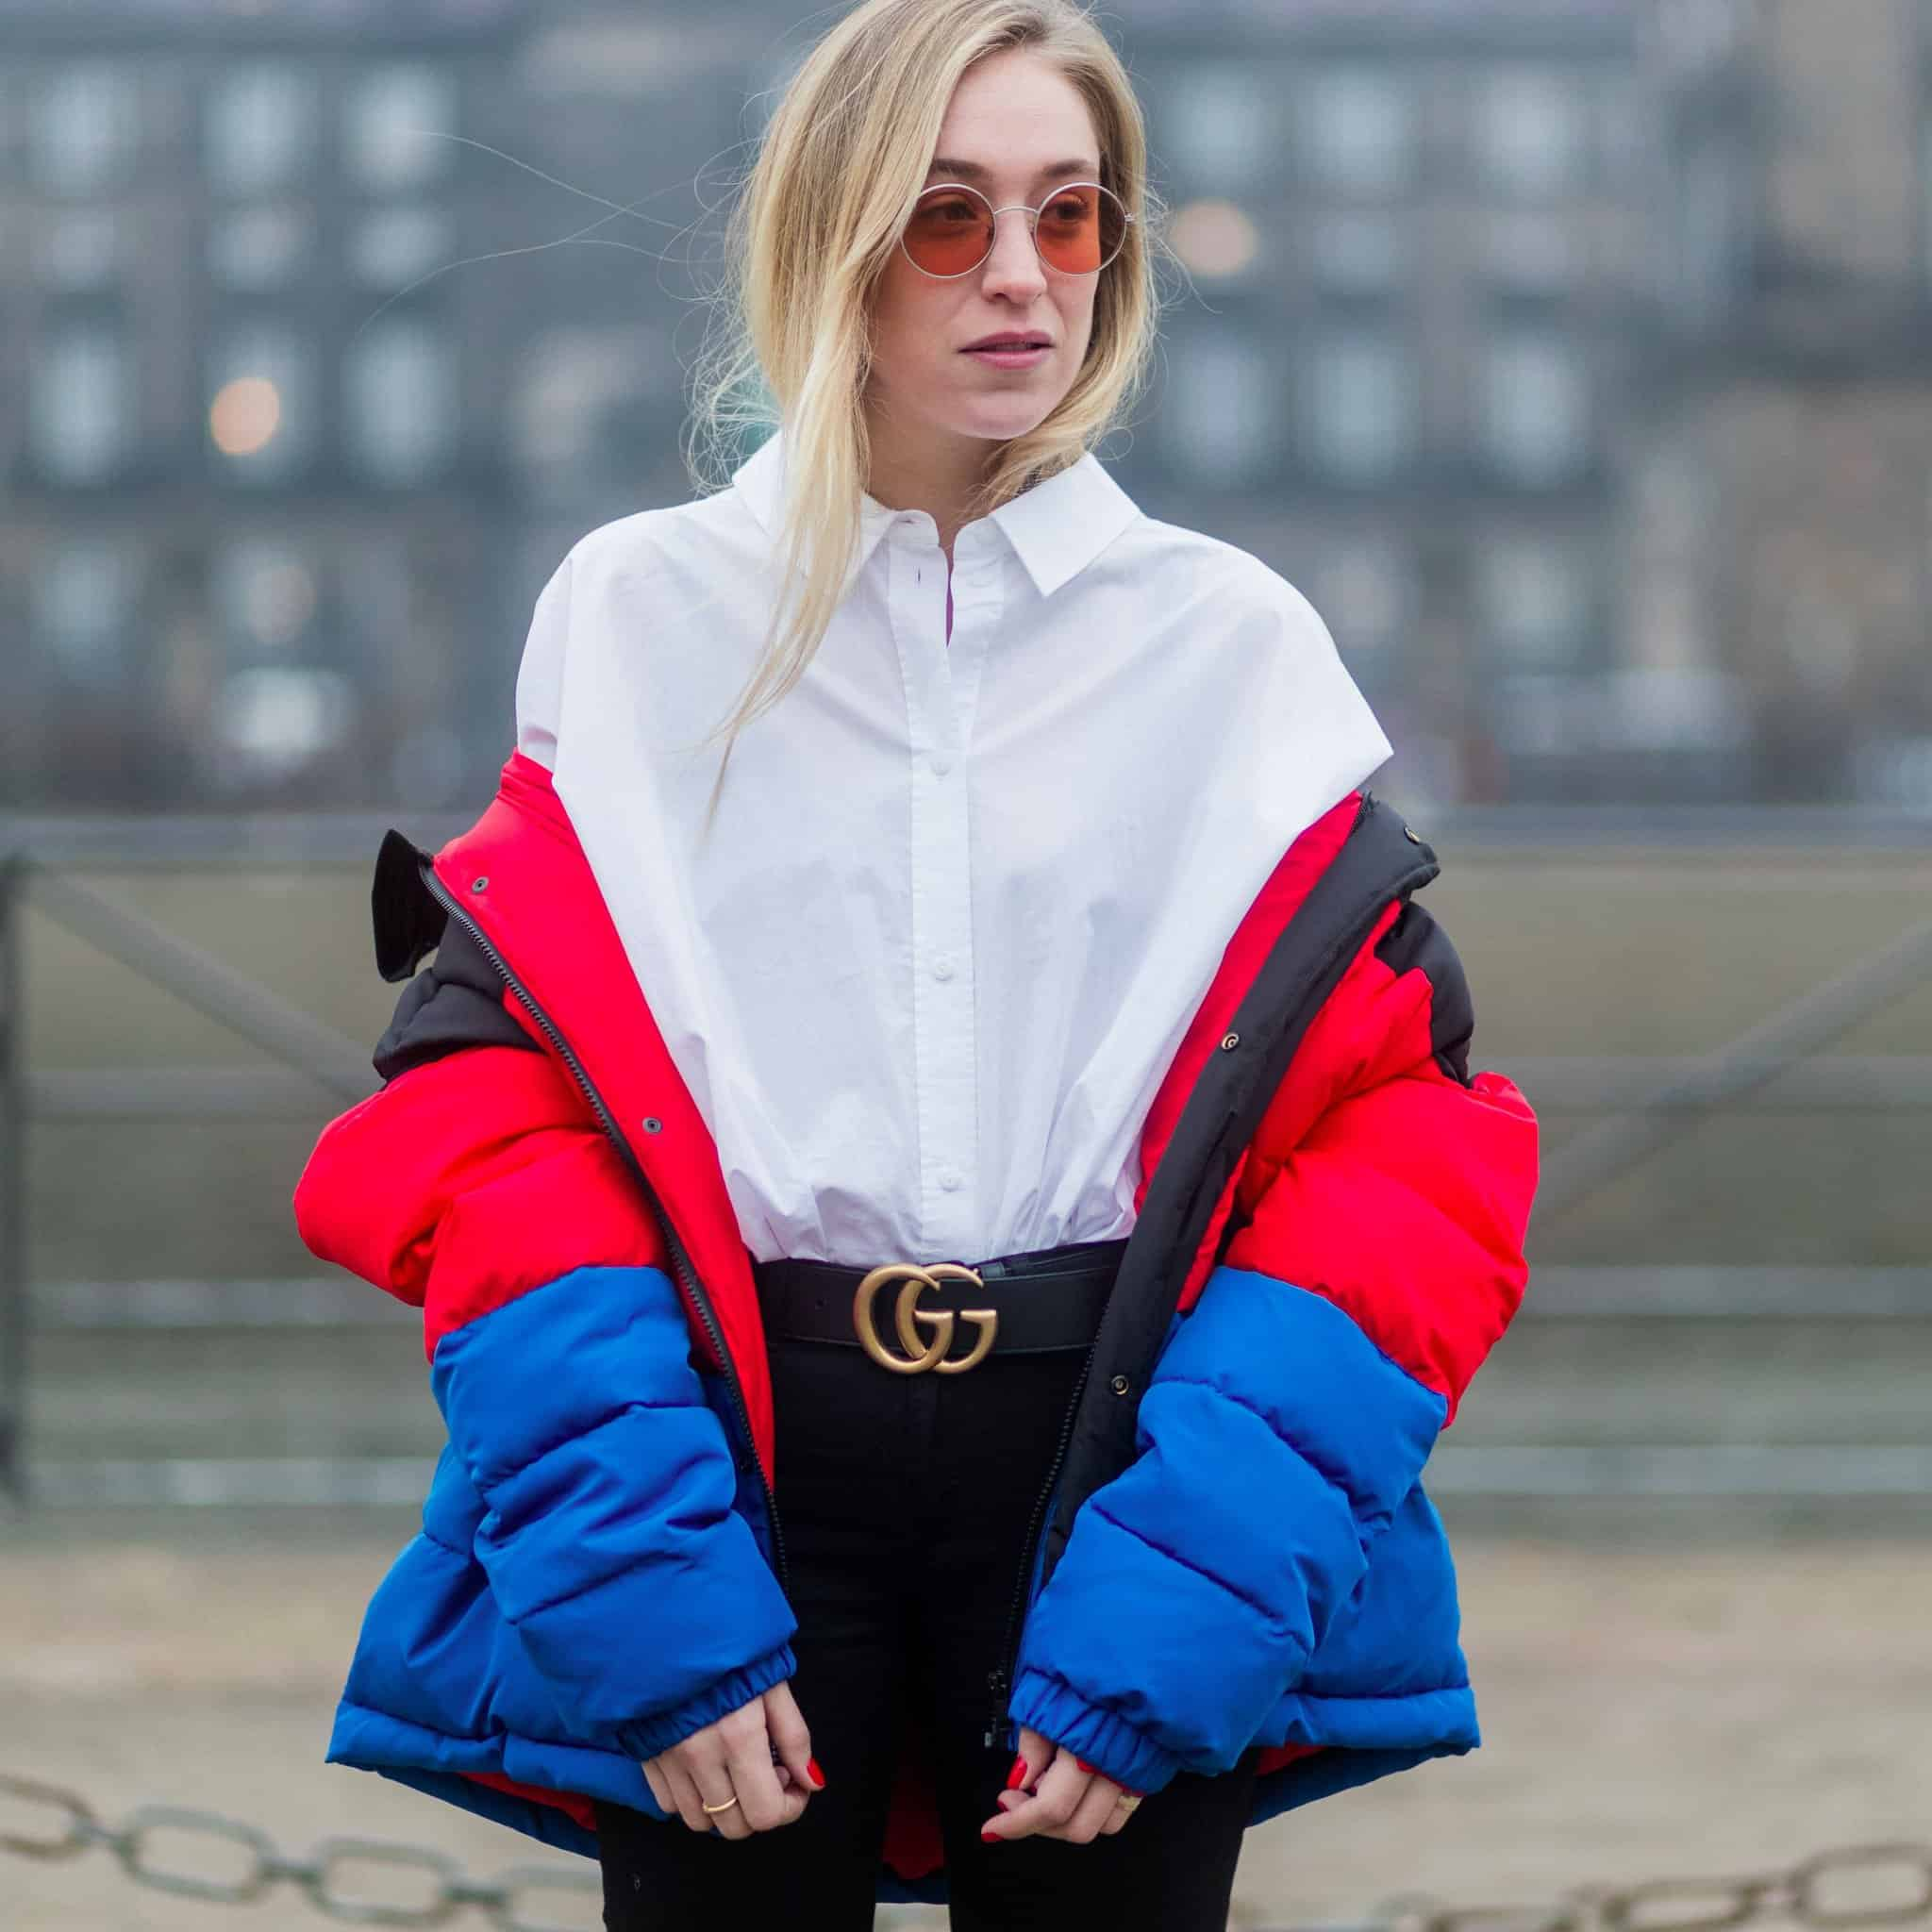 Oversized Puffer Jackets: Why The Sudden Fashion Obsession